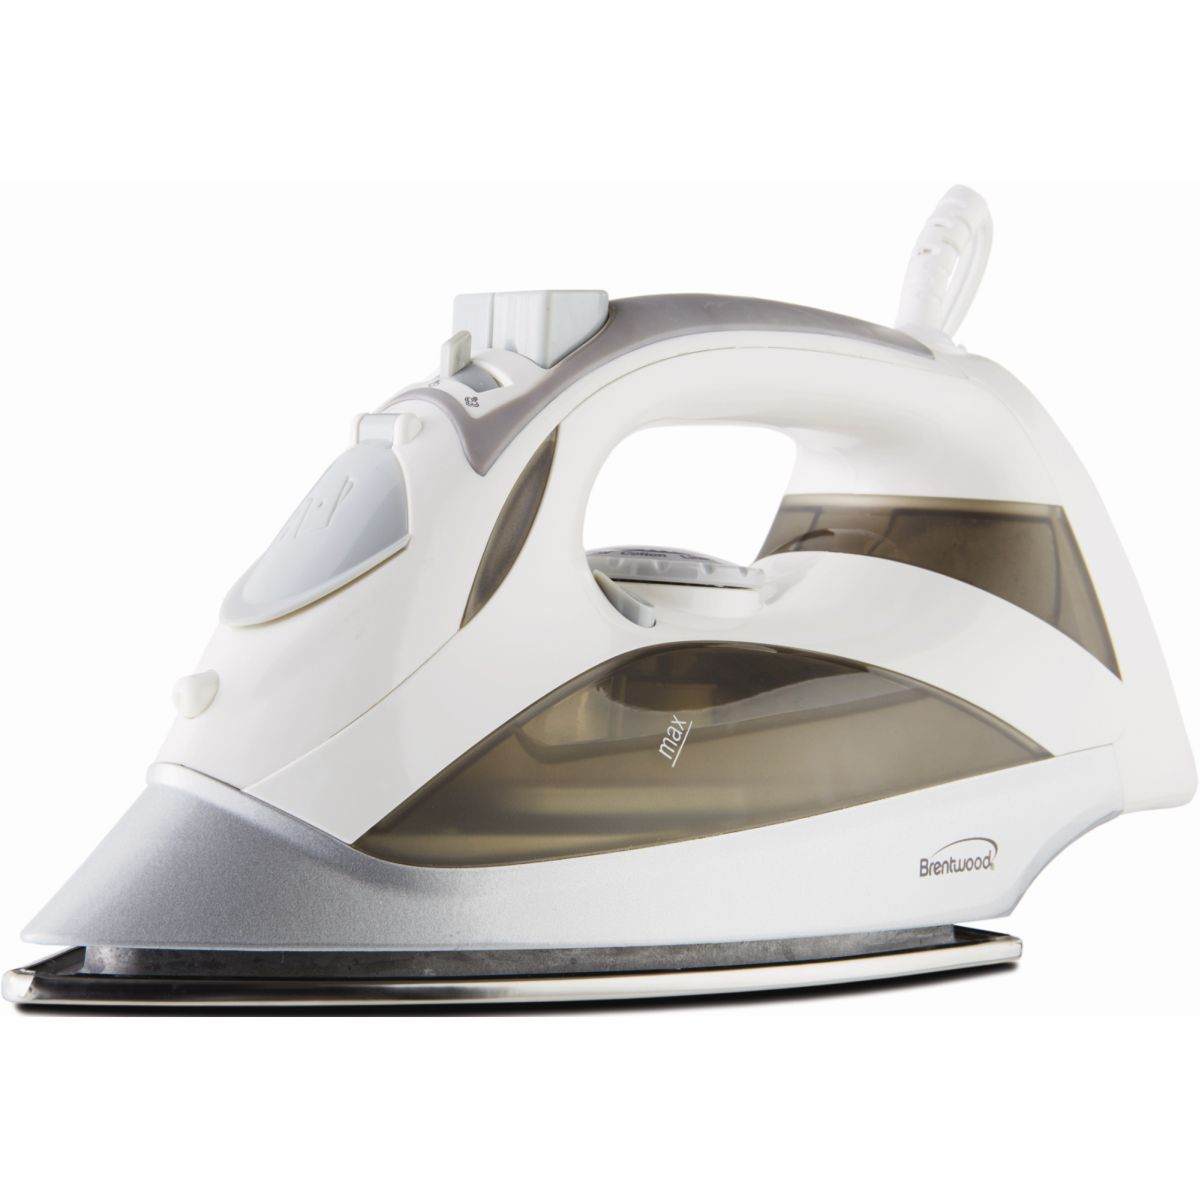 Brentwood [mpi-90w] Steam Iron With Auto Shut-off [white] - Stainless Steel Sole Plate - 1200 W - White (mpi90w)